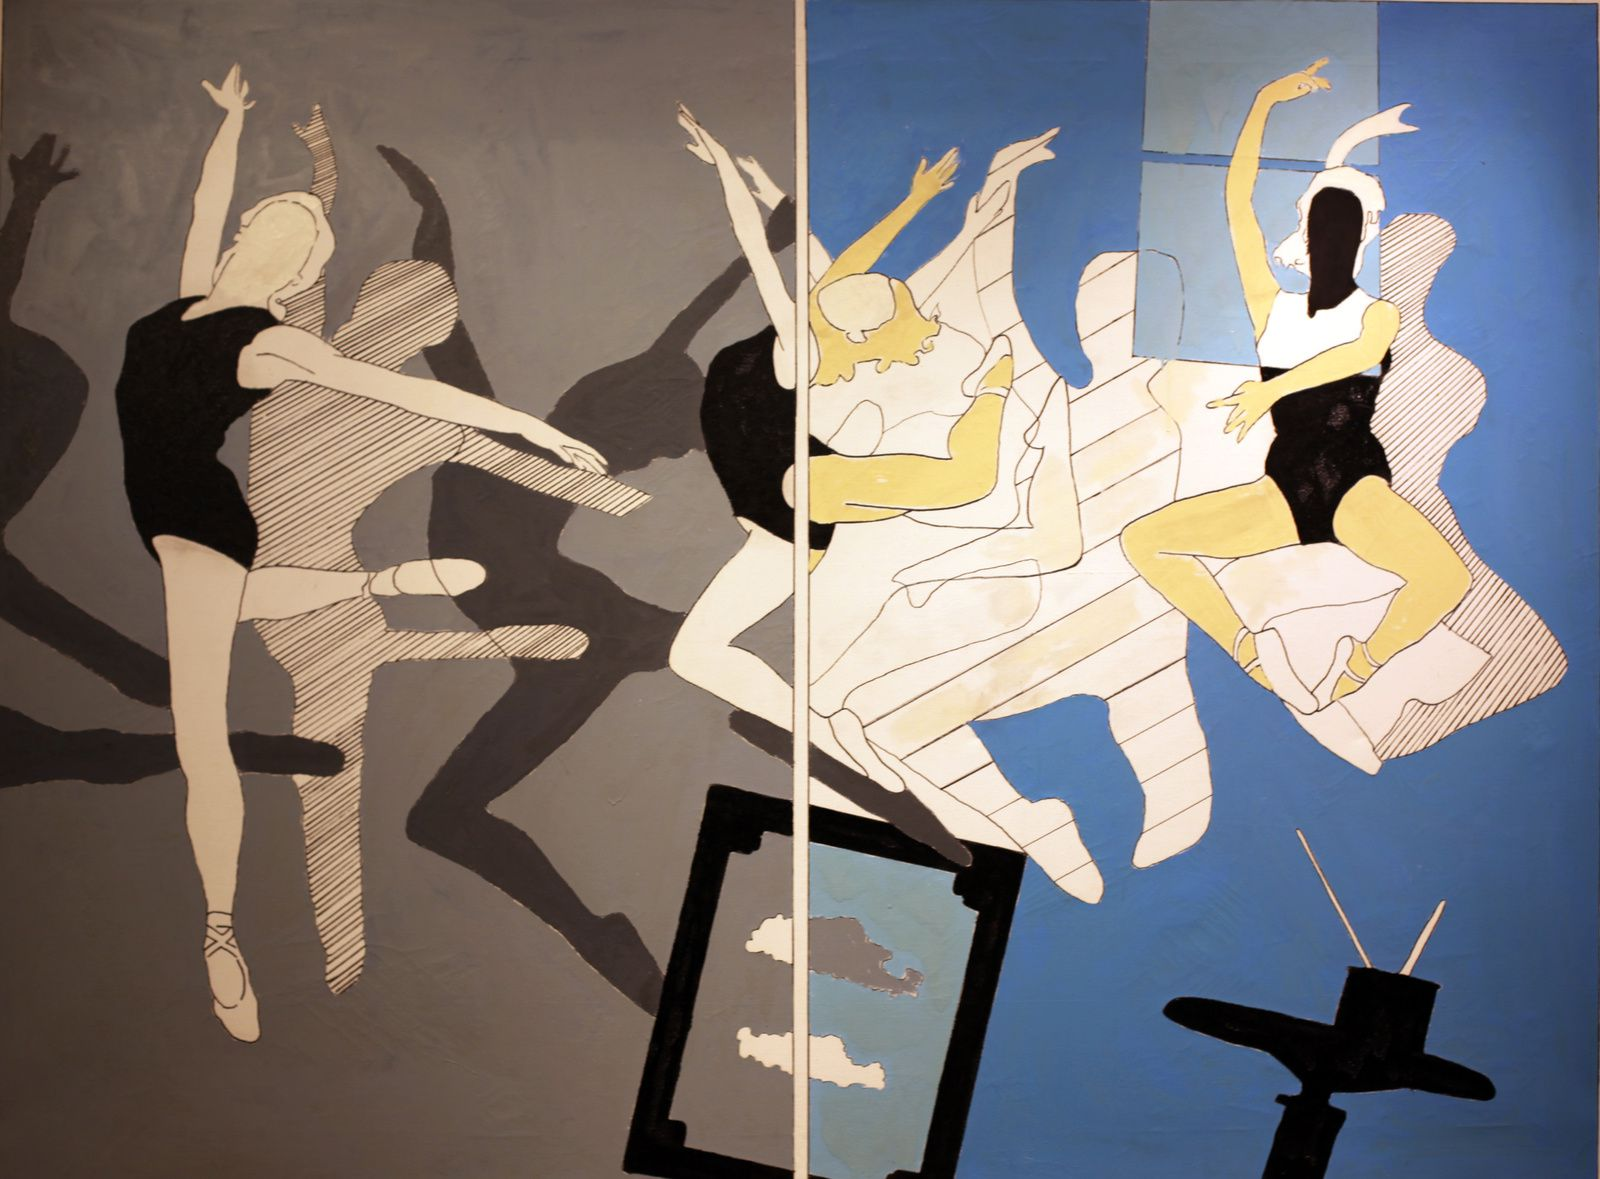 """Sequenza di balletto"", 1965 de Tano Festa - Courtesy Galerie Tornabuoni Art Galerie © Photo Éric Simon"